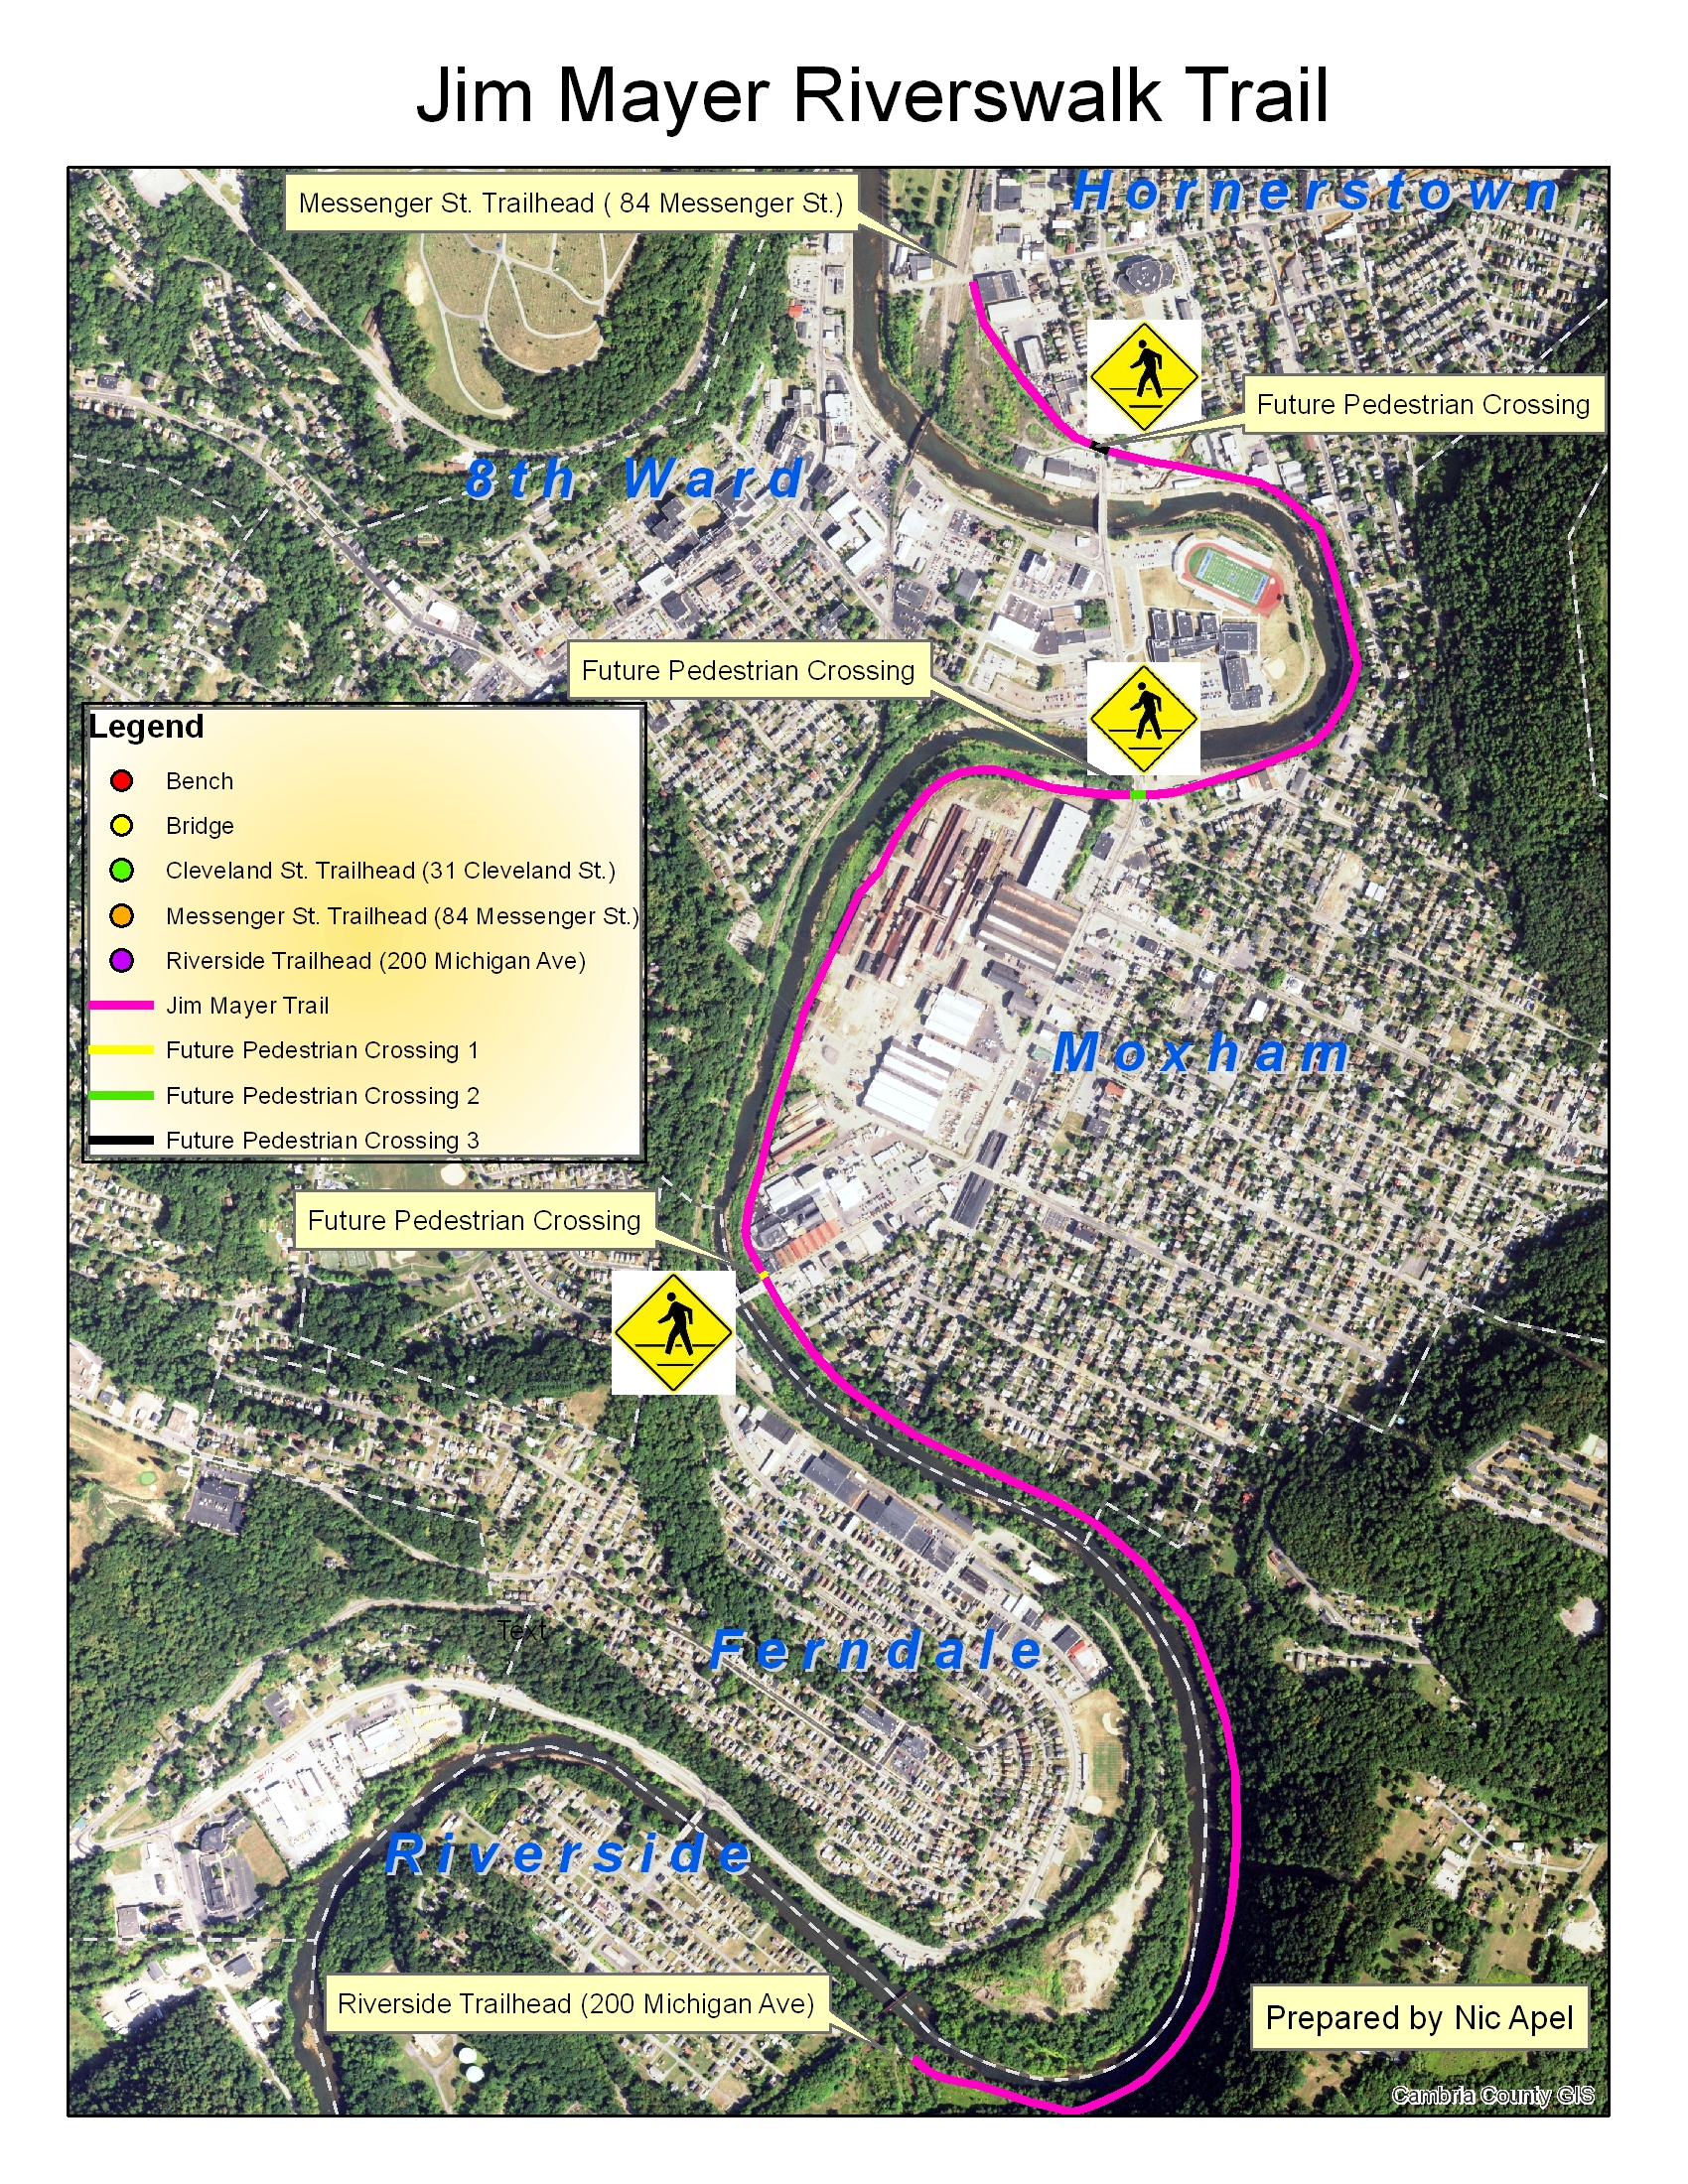 Cambria County Property Maps The Jim Mayer Riverswalk Trail   Cambria County Conservation